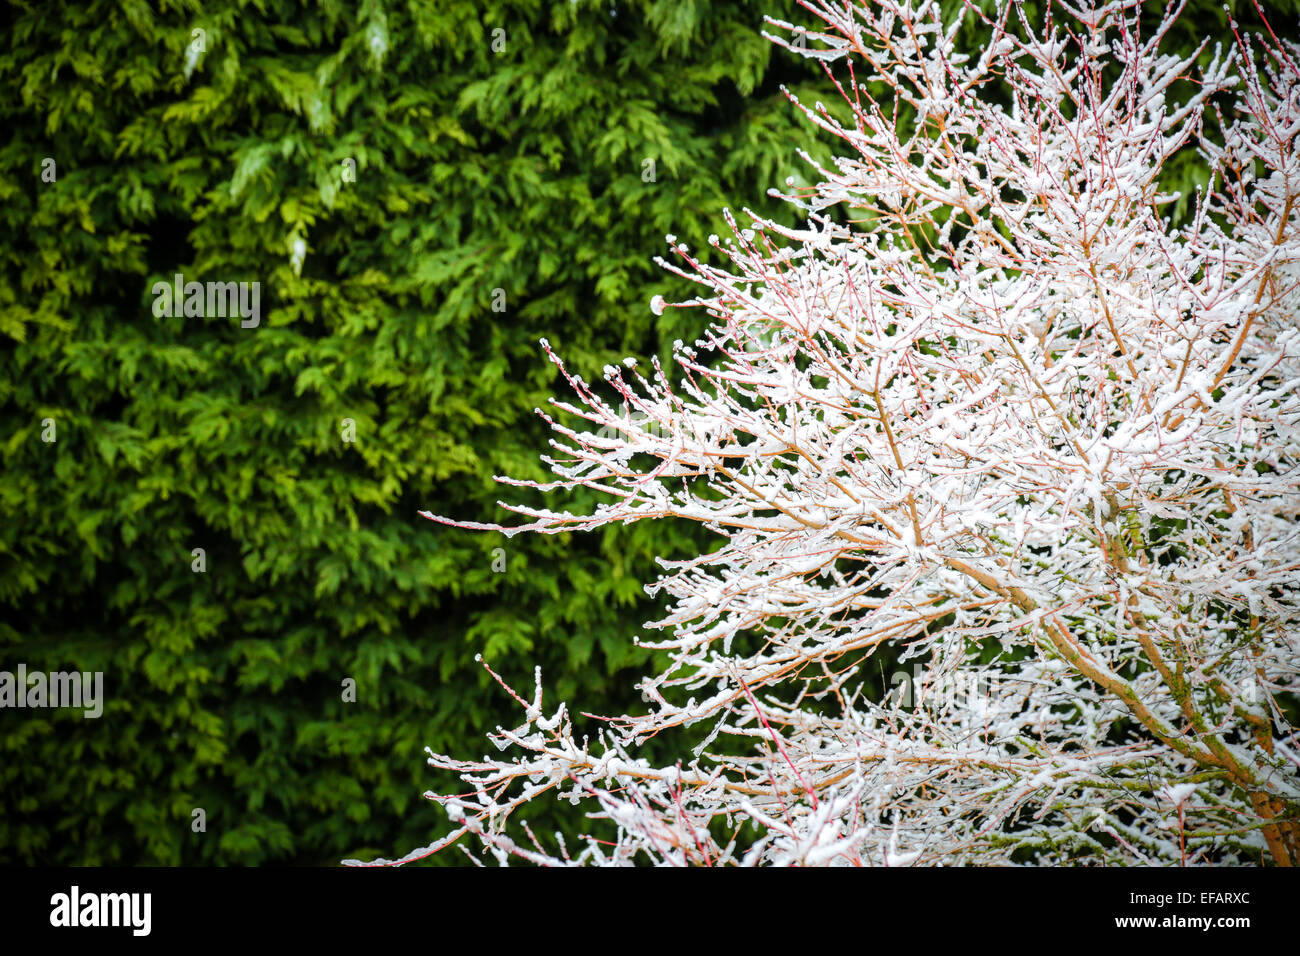 Bare branches of a tree covered in snow with an evergreen hedge behind still green Stock Photo